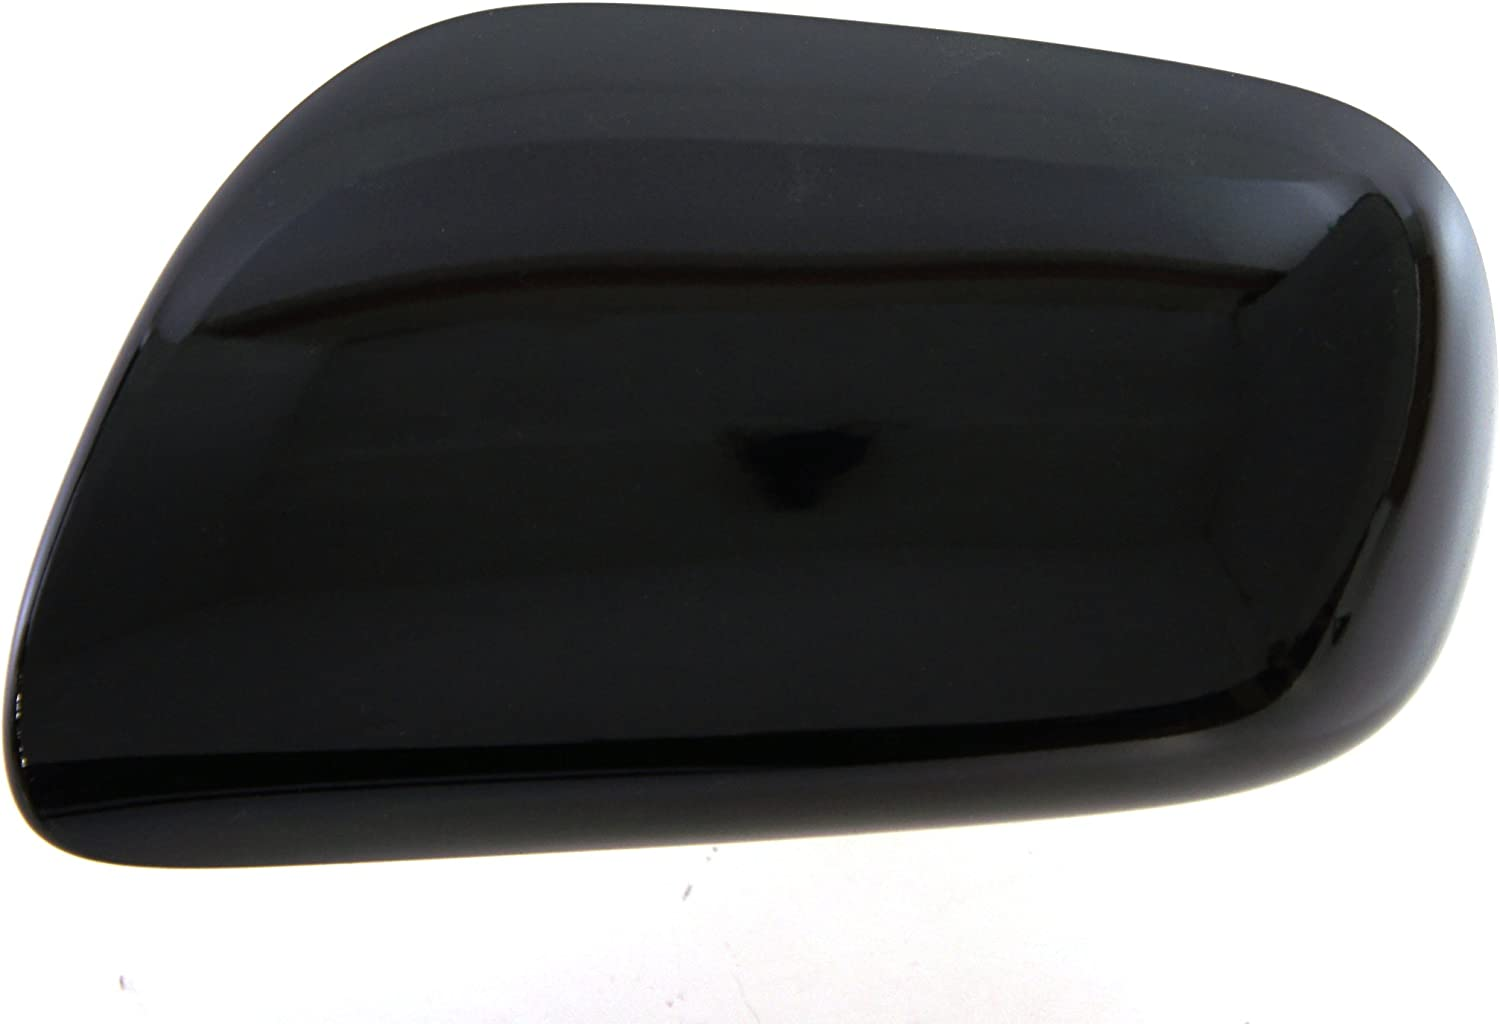 GENUINE TOYOTA YARIS OUTSIDE MIRROR COVER DRIVER SIDE 87945-52080-A0 OEM